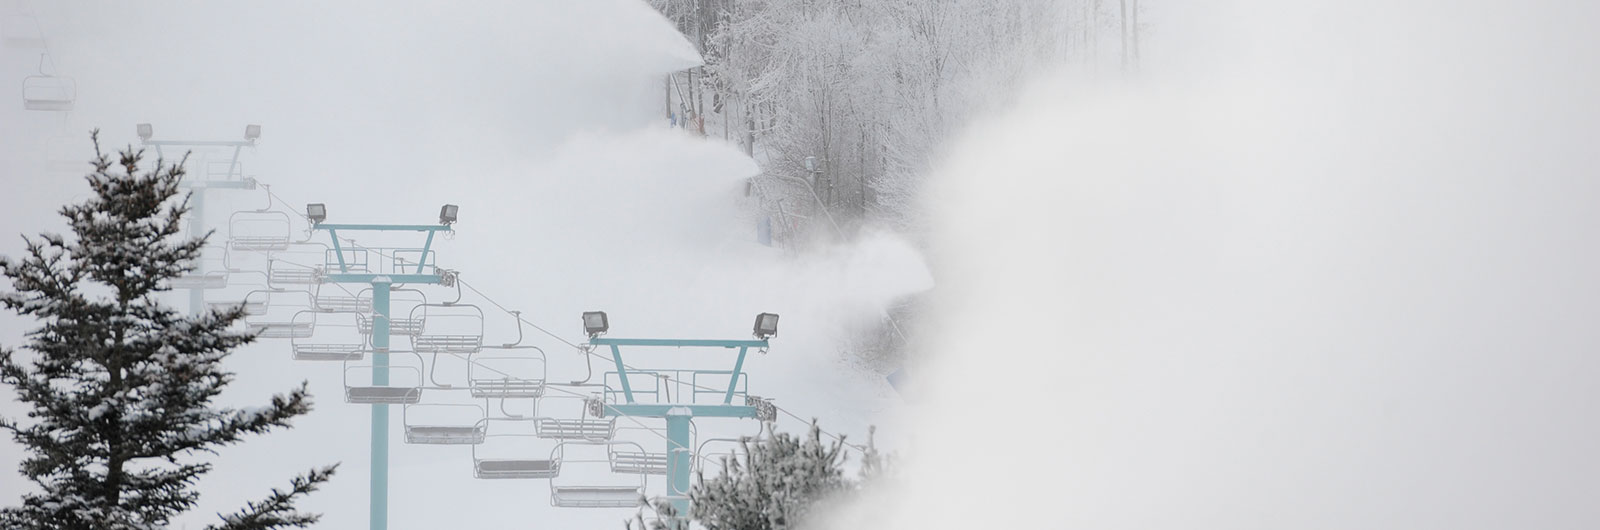 Cloud of snow from snowmaking